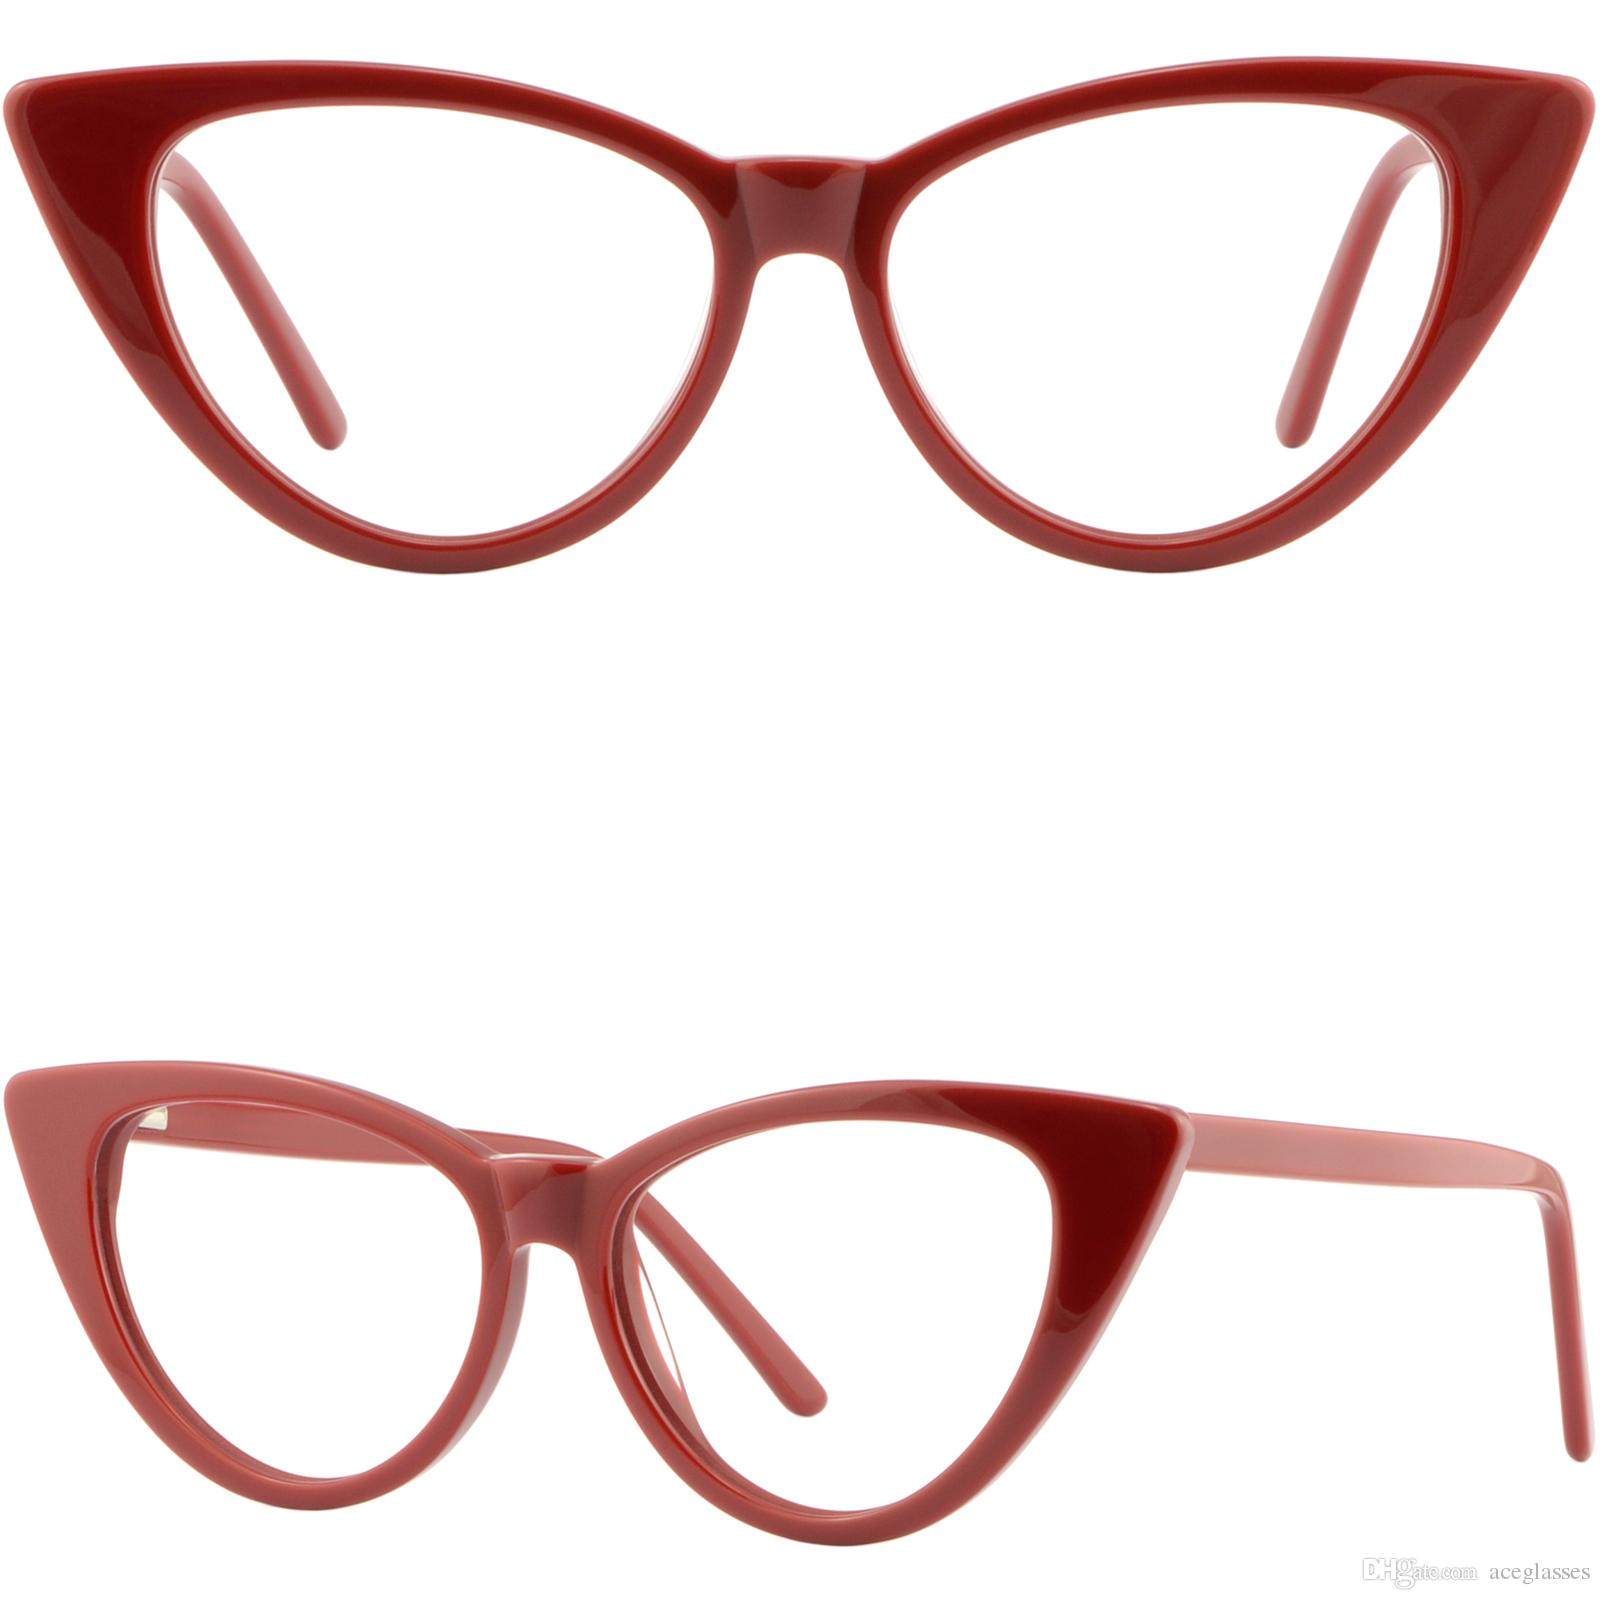 ea16ba8eecf Large Womens Cateye Frame Plastic Spring Hinges Cat Eye Prescription Glasses  Red Women Eyeglasses Frames Brand Name Eyeglass Frames From Aceglasses